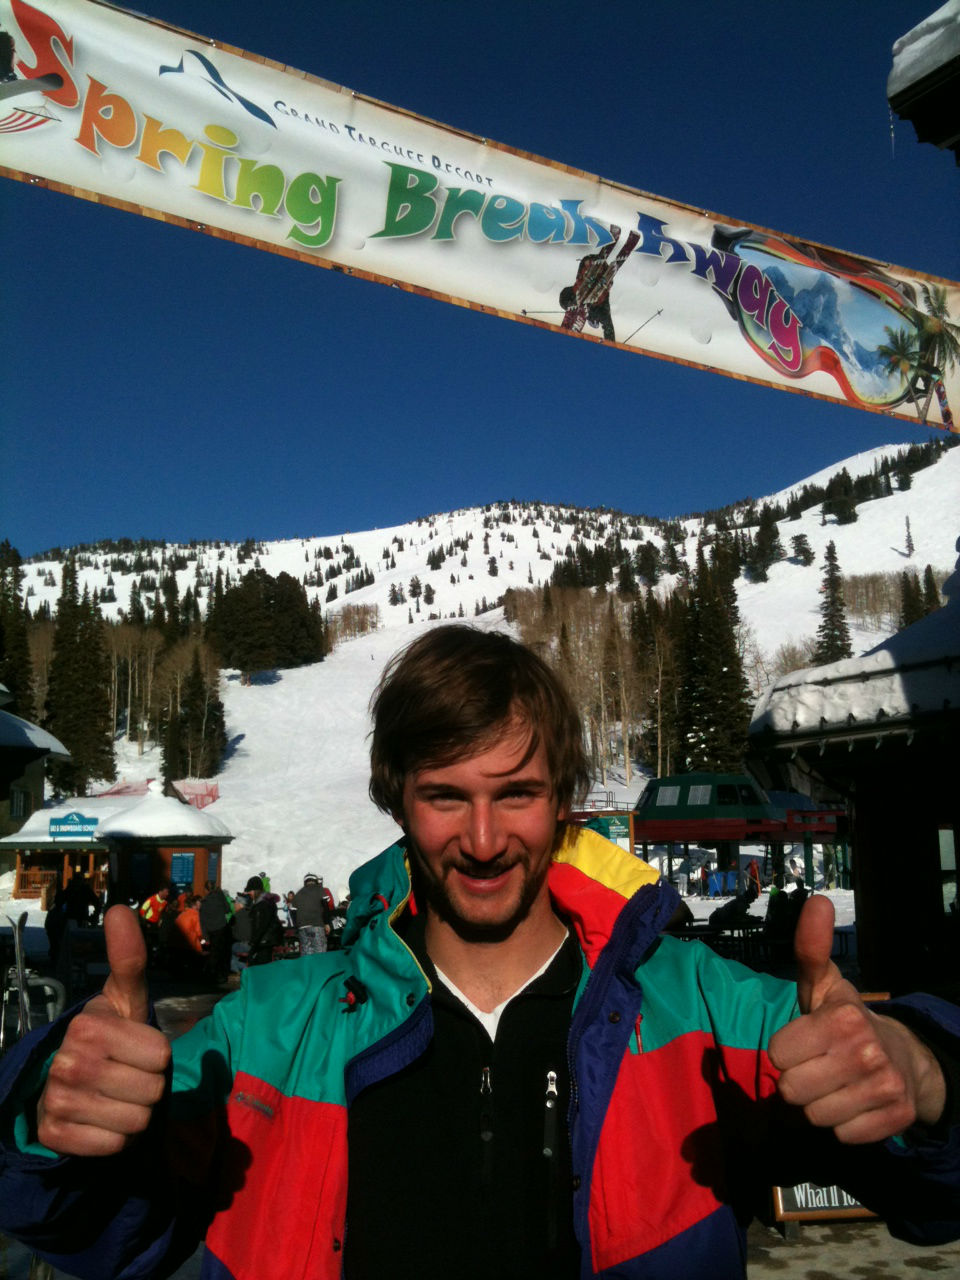 mustache celebration grand targhee spring break 80s weekend jackson hole driggs idaho spring skiing snowboarding late season